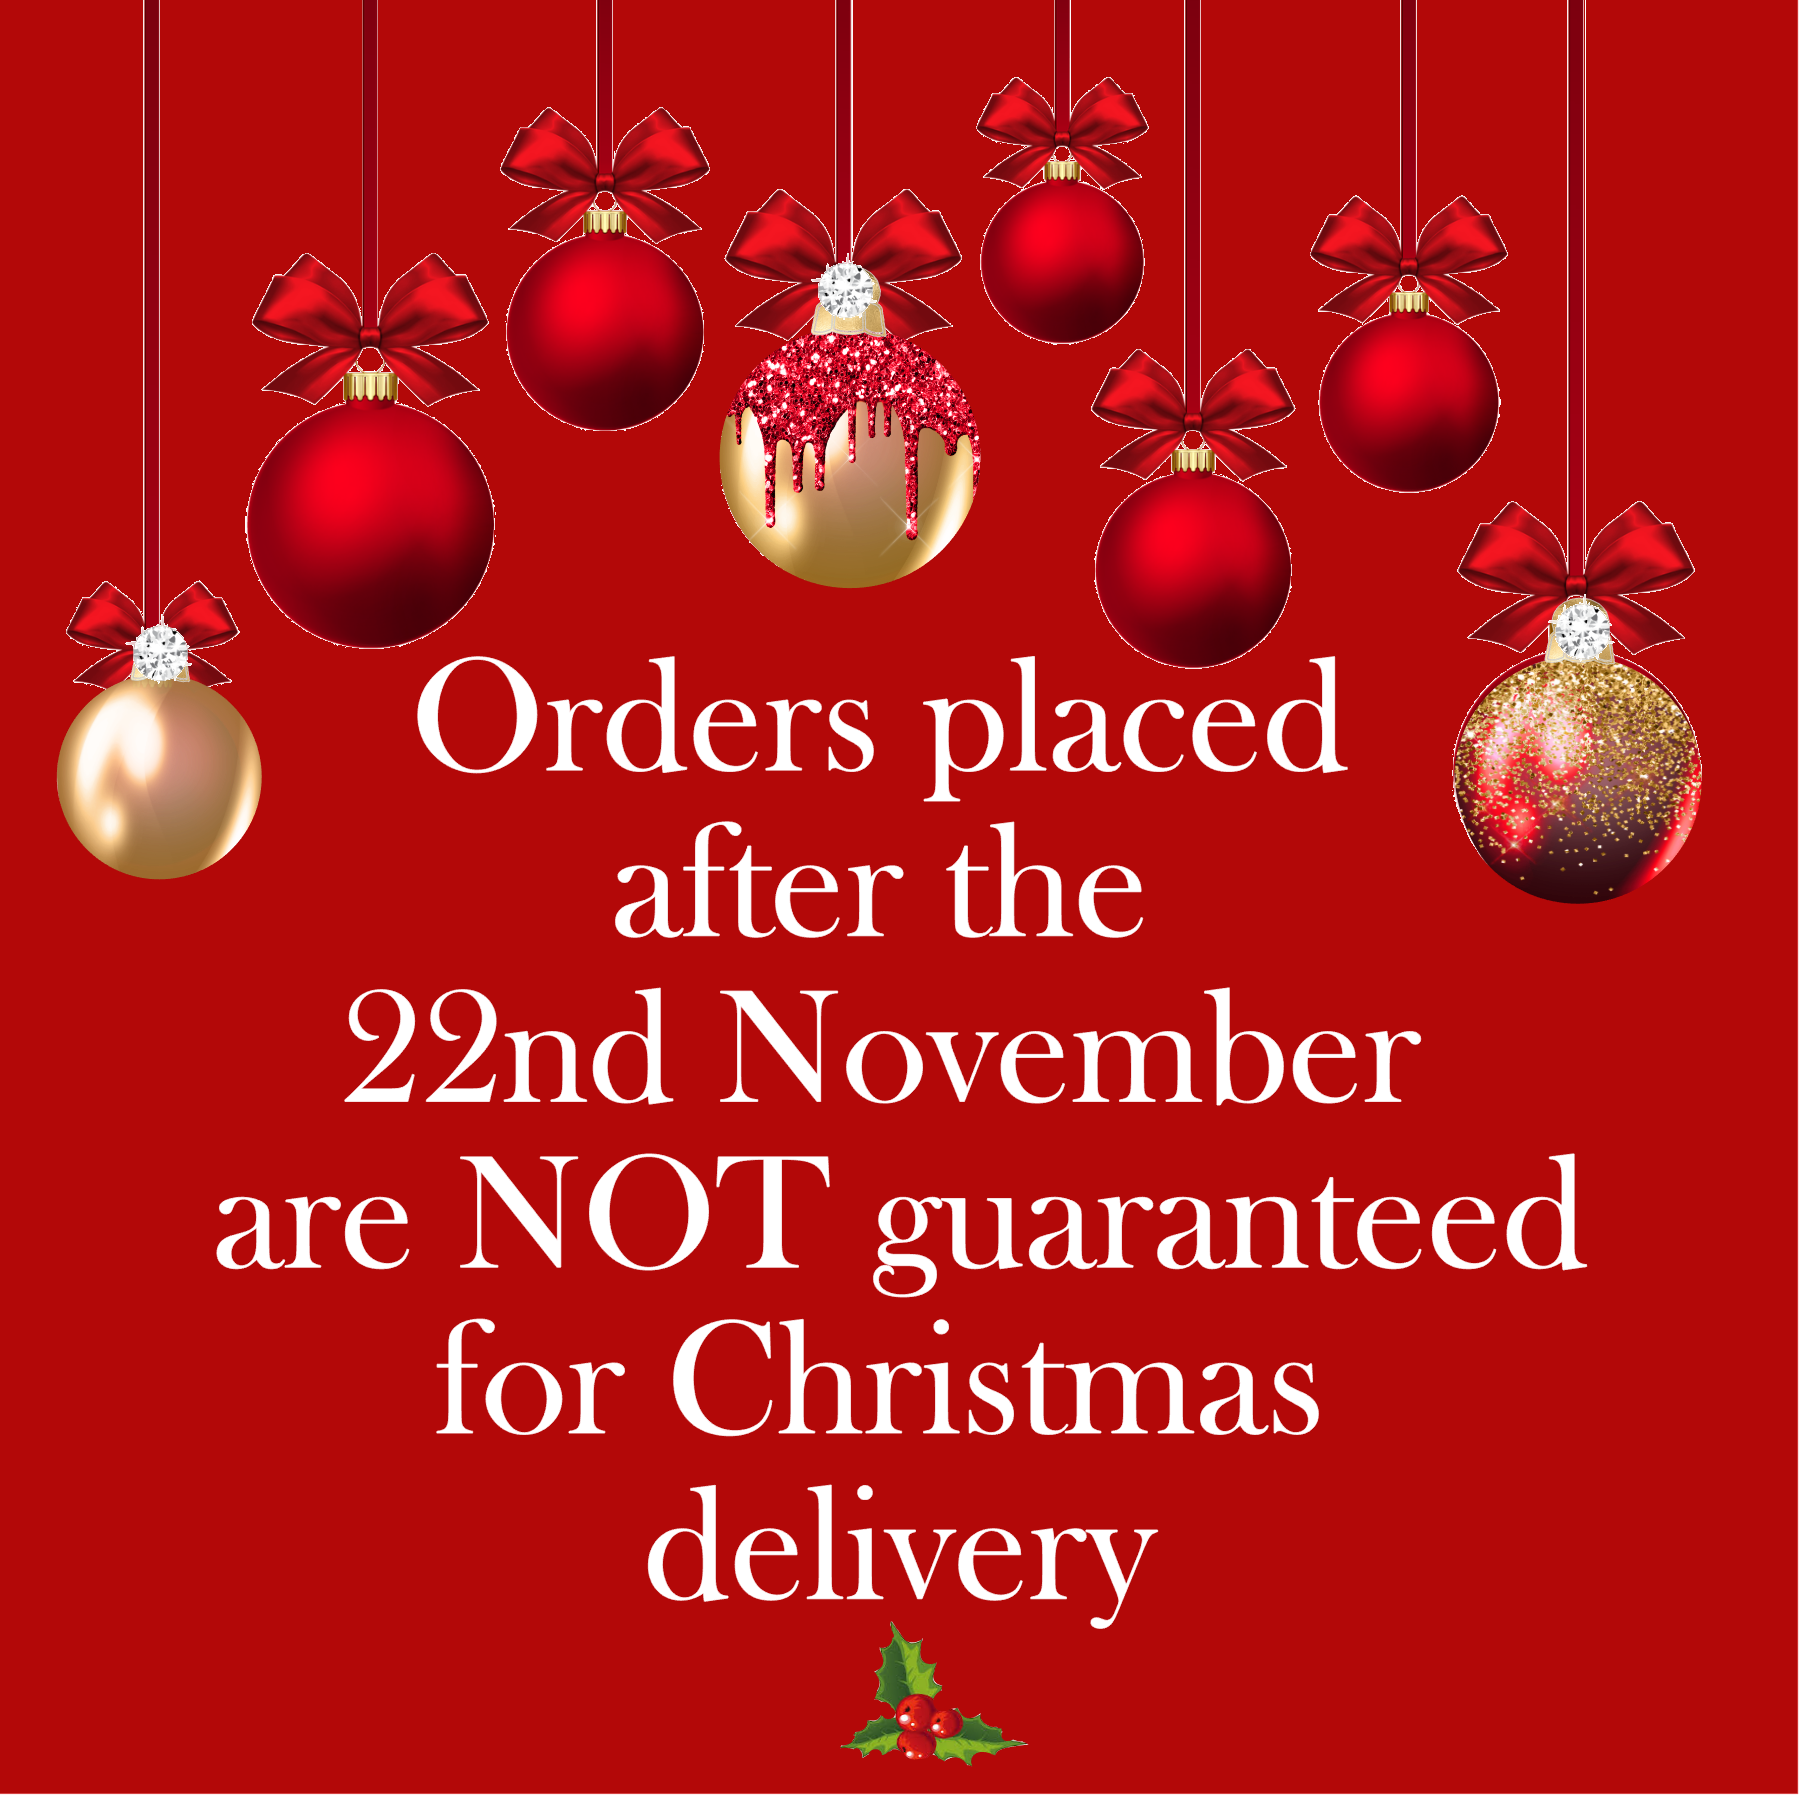 Order early for Christmas gifts